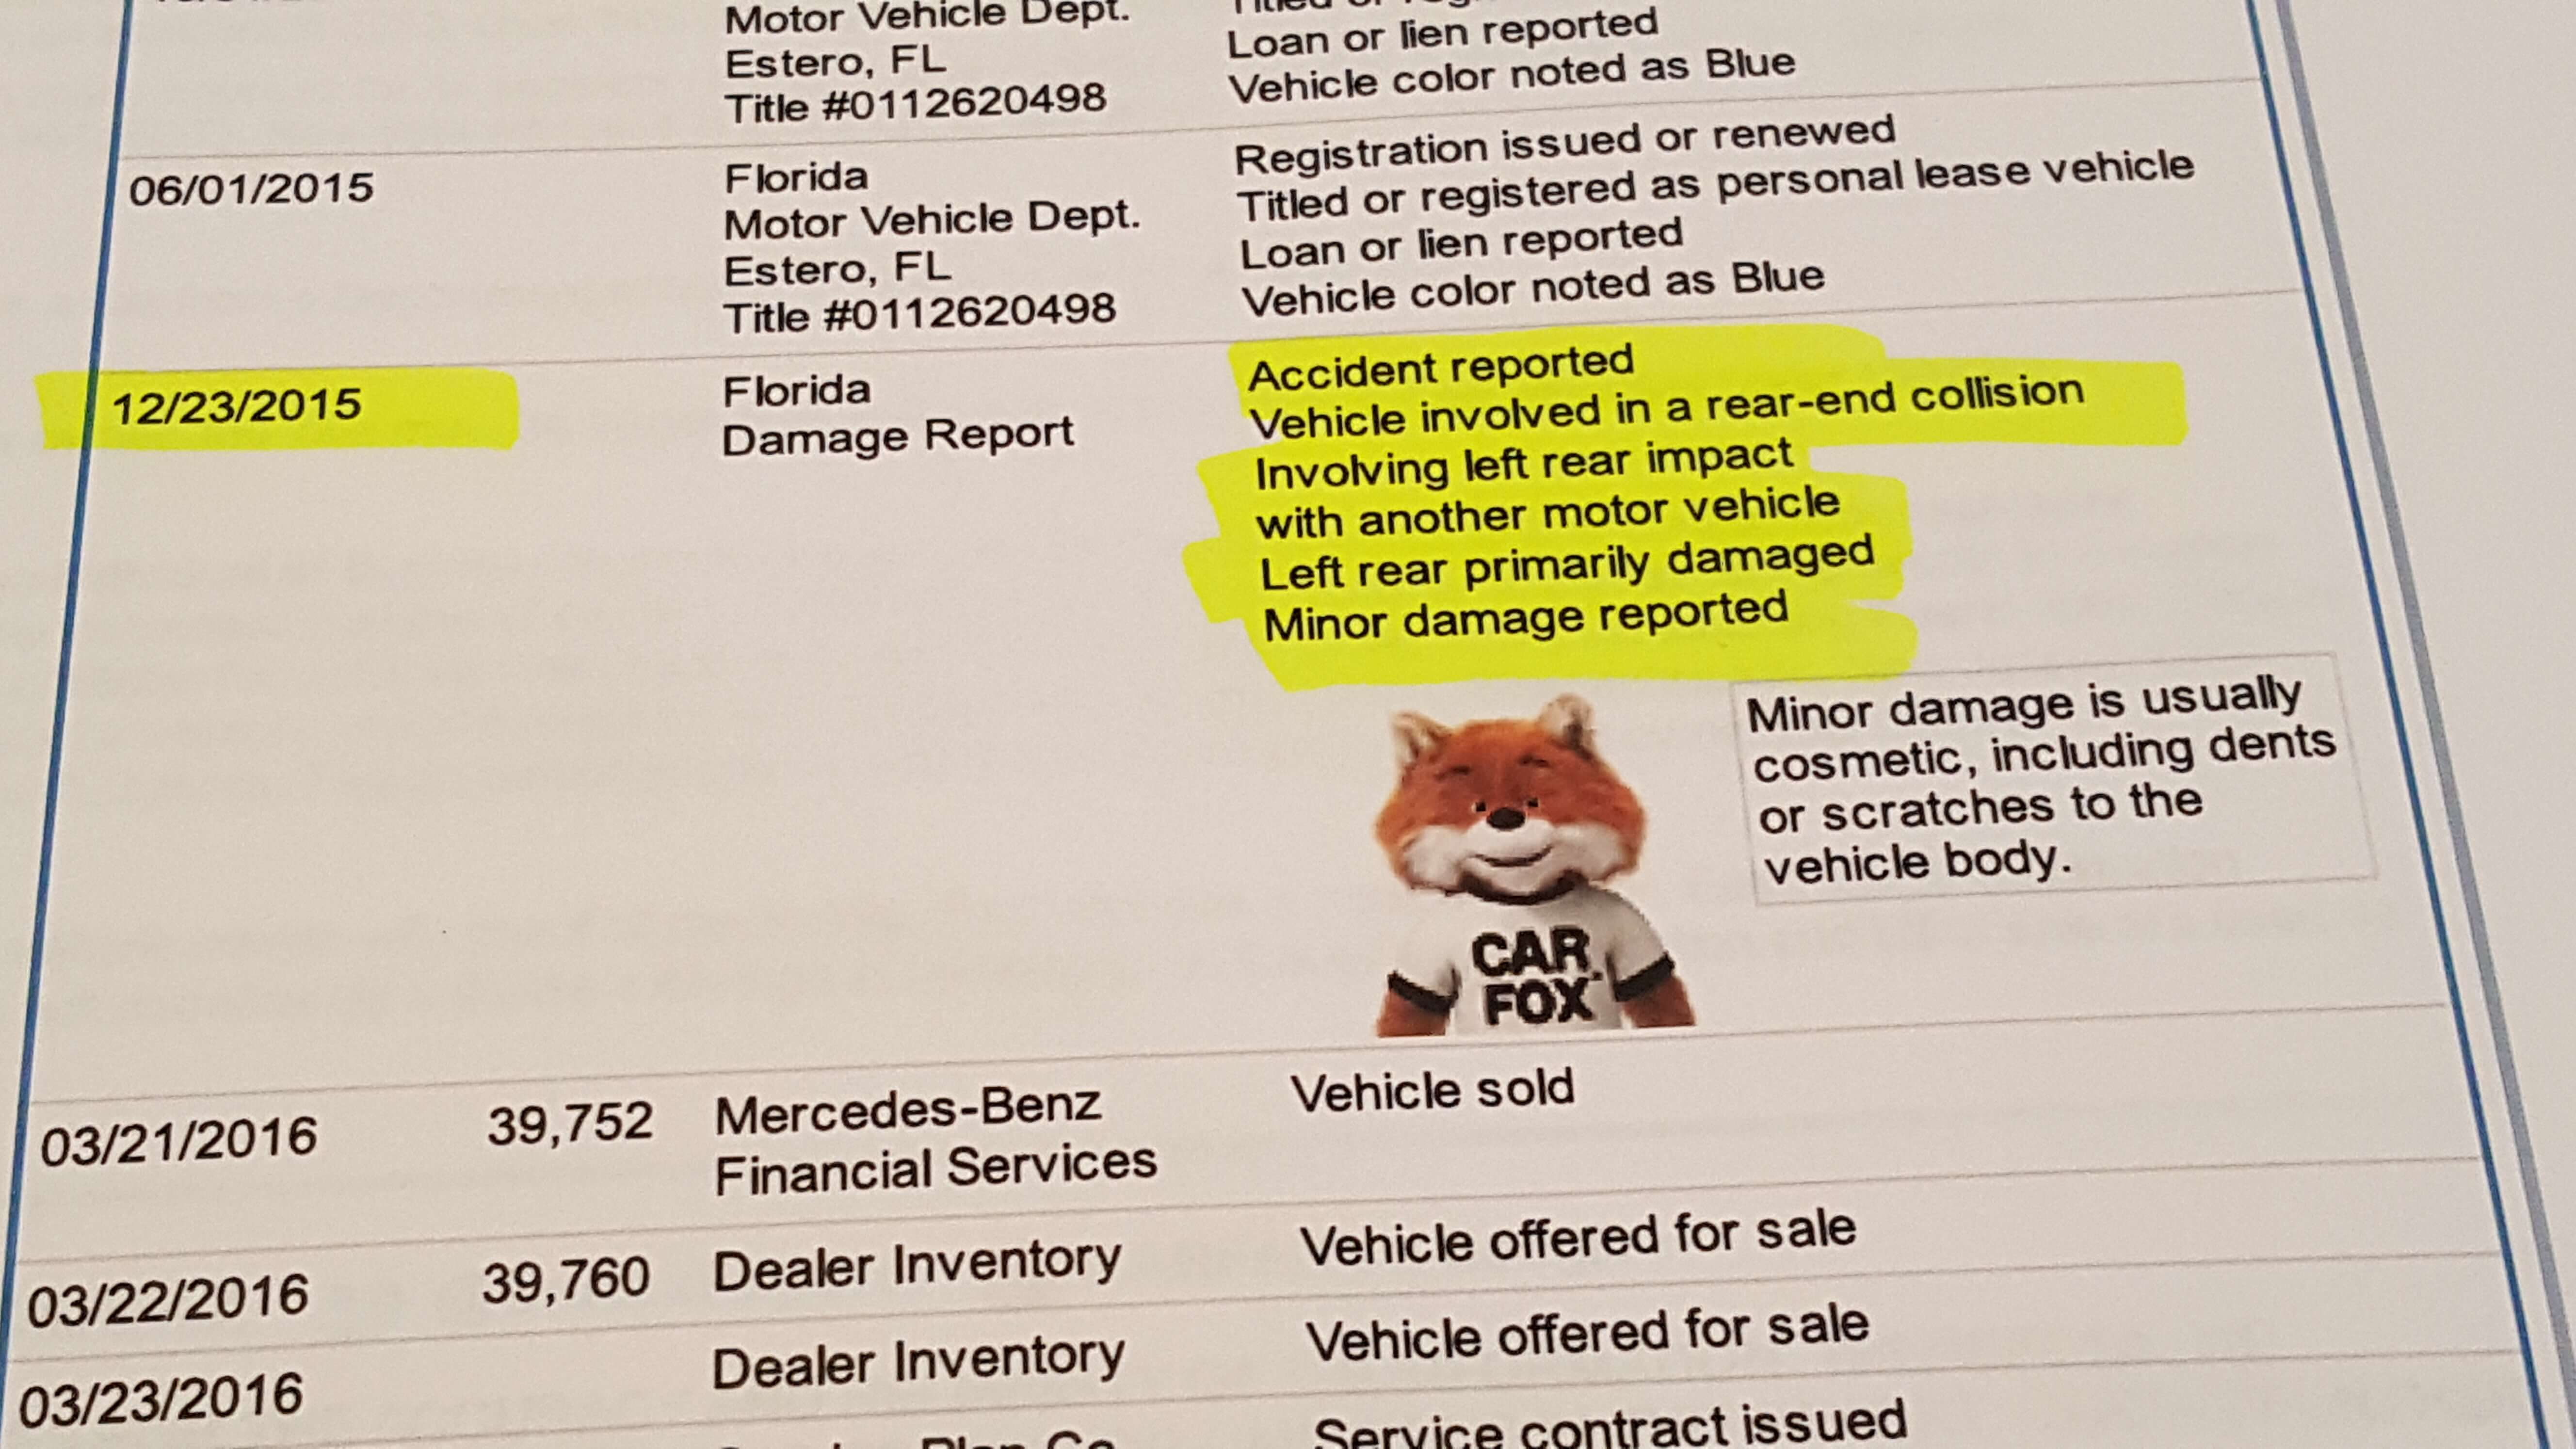 Vehicle History Report details a description of minor accident in the past